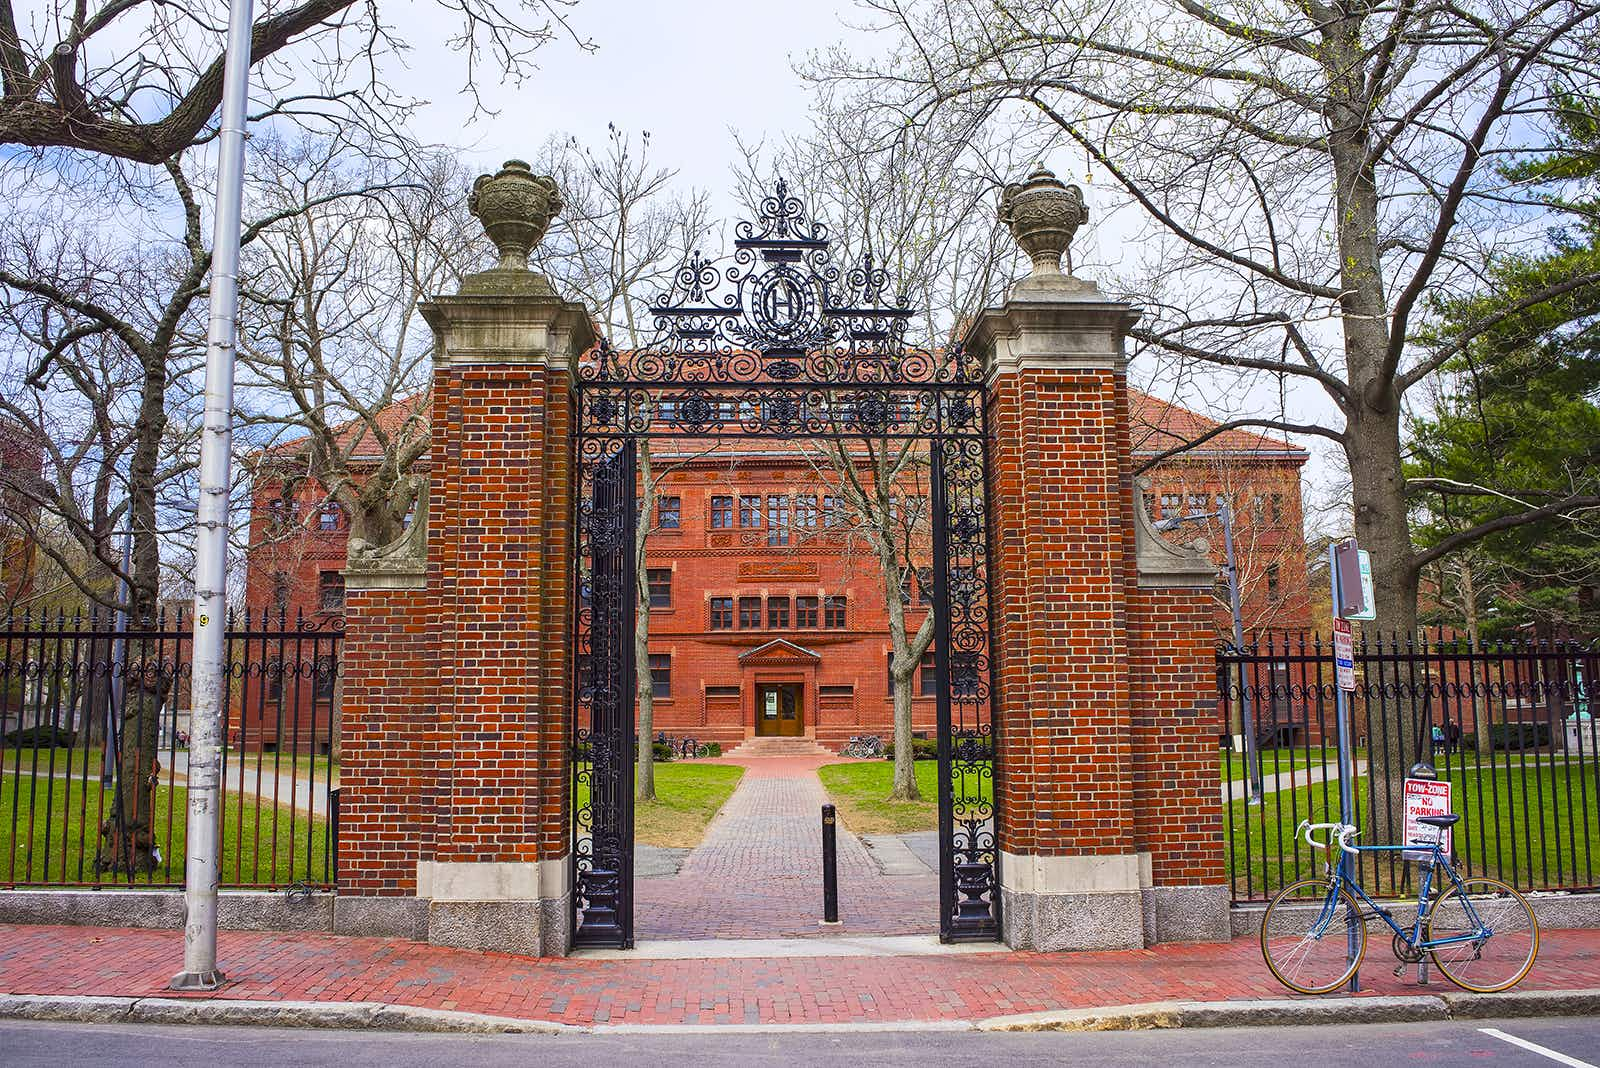 red brick gateposts and wrought iron, open gate leading to a redbrick residence hall at Harvard on a sunny day